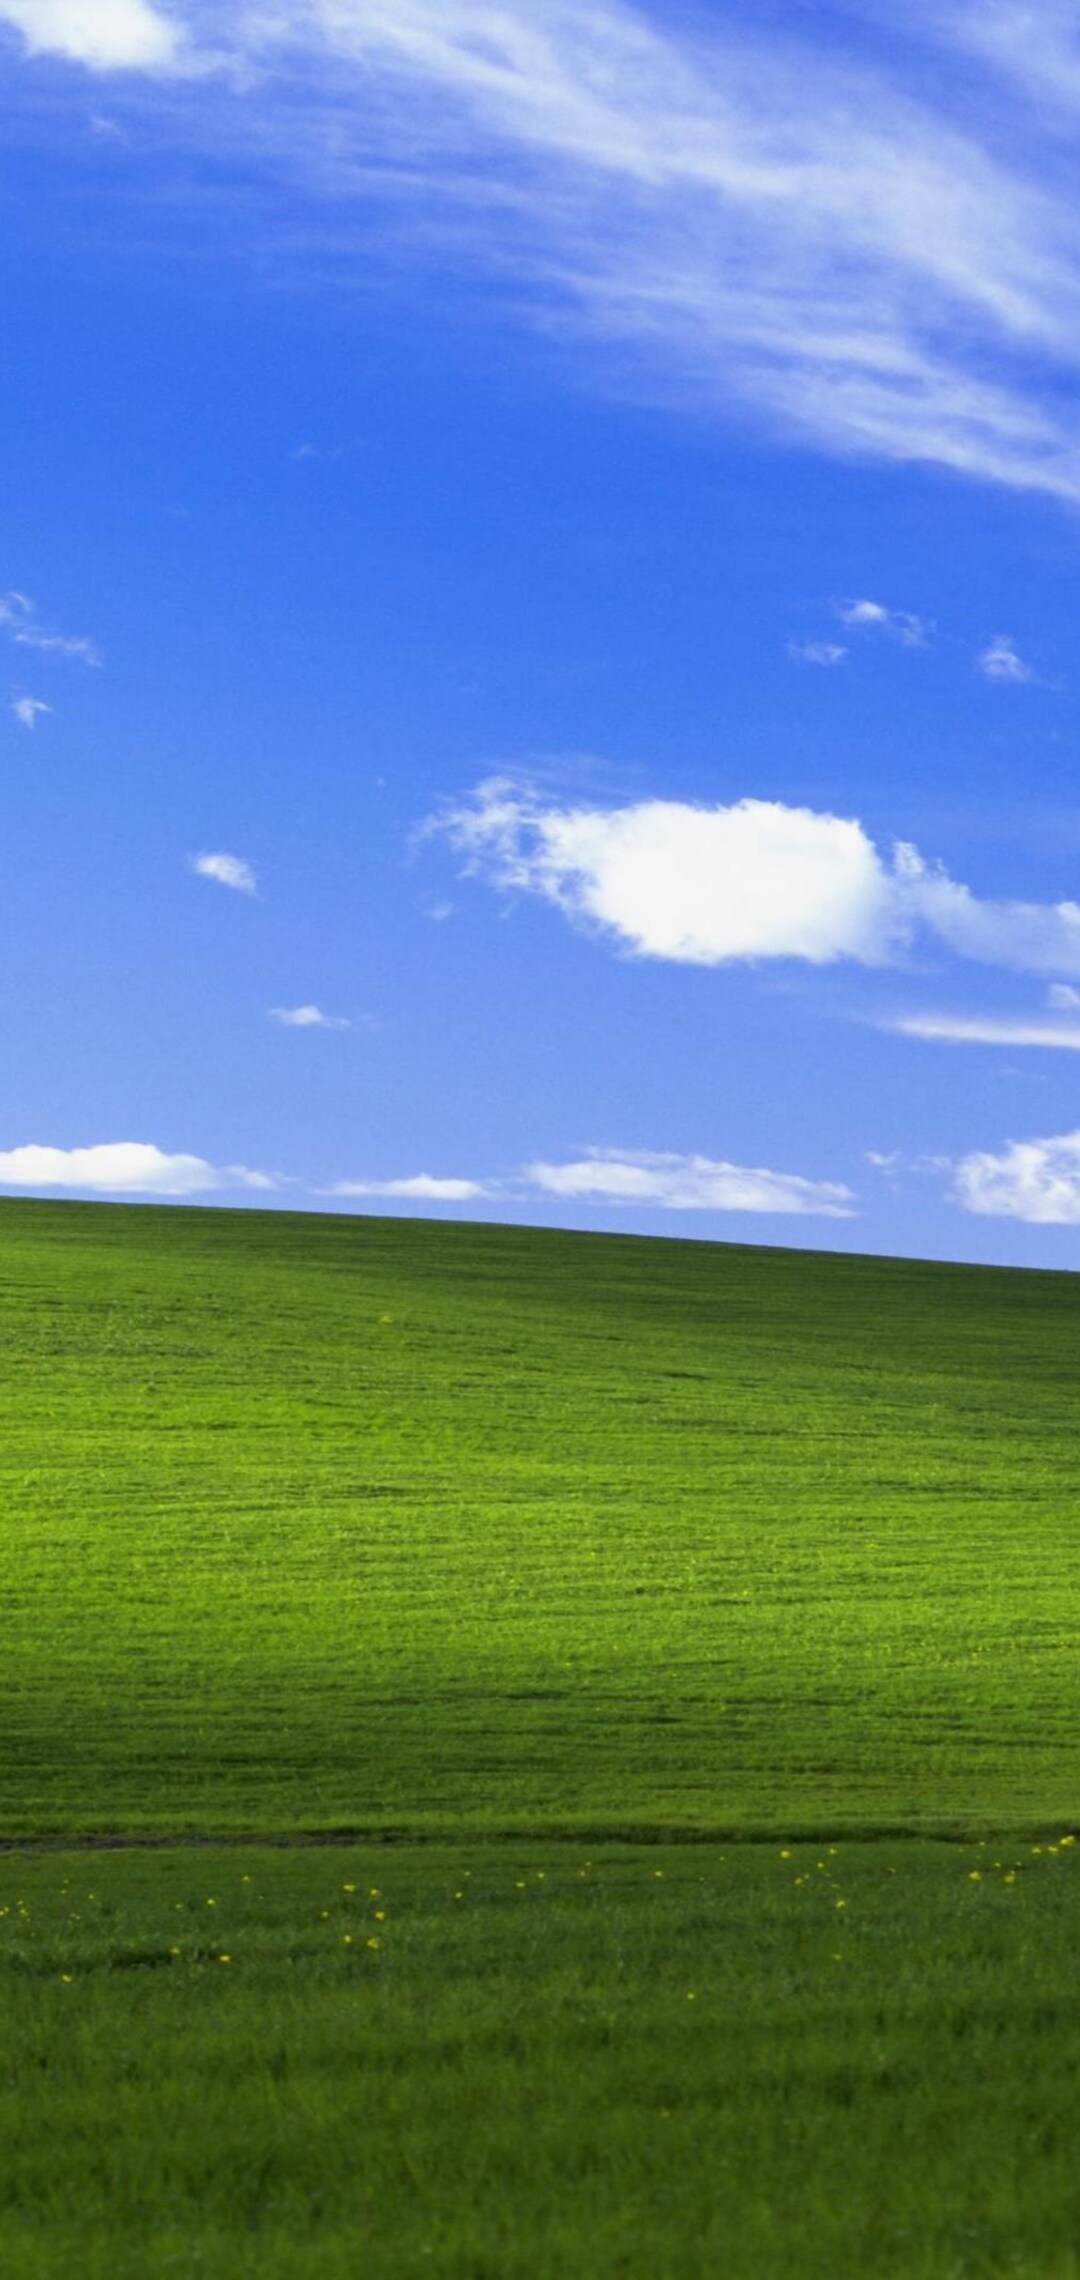 windows-xp-bliss-4k-lu.jpg